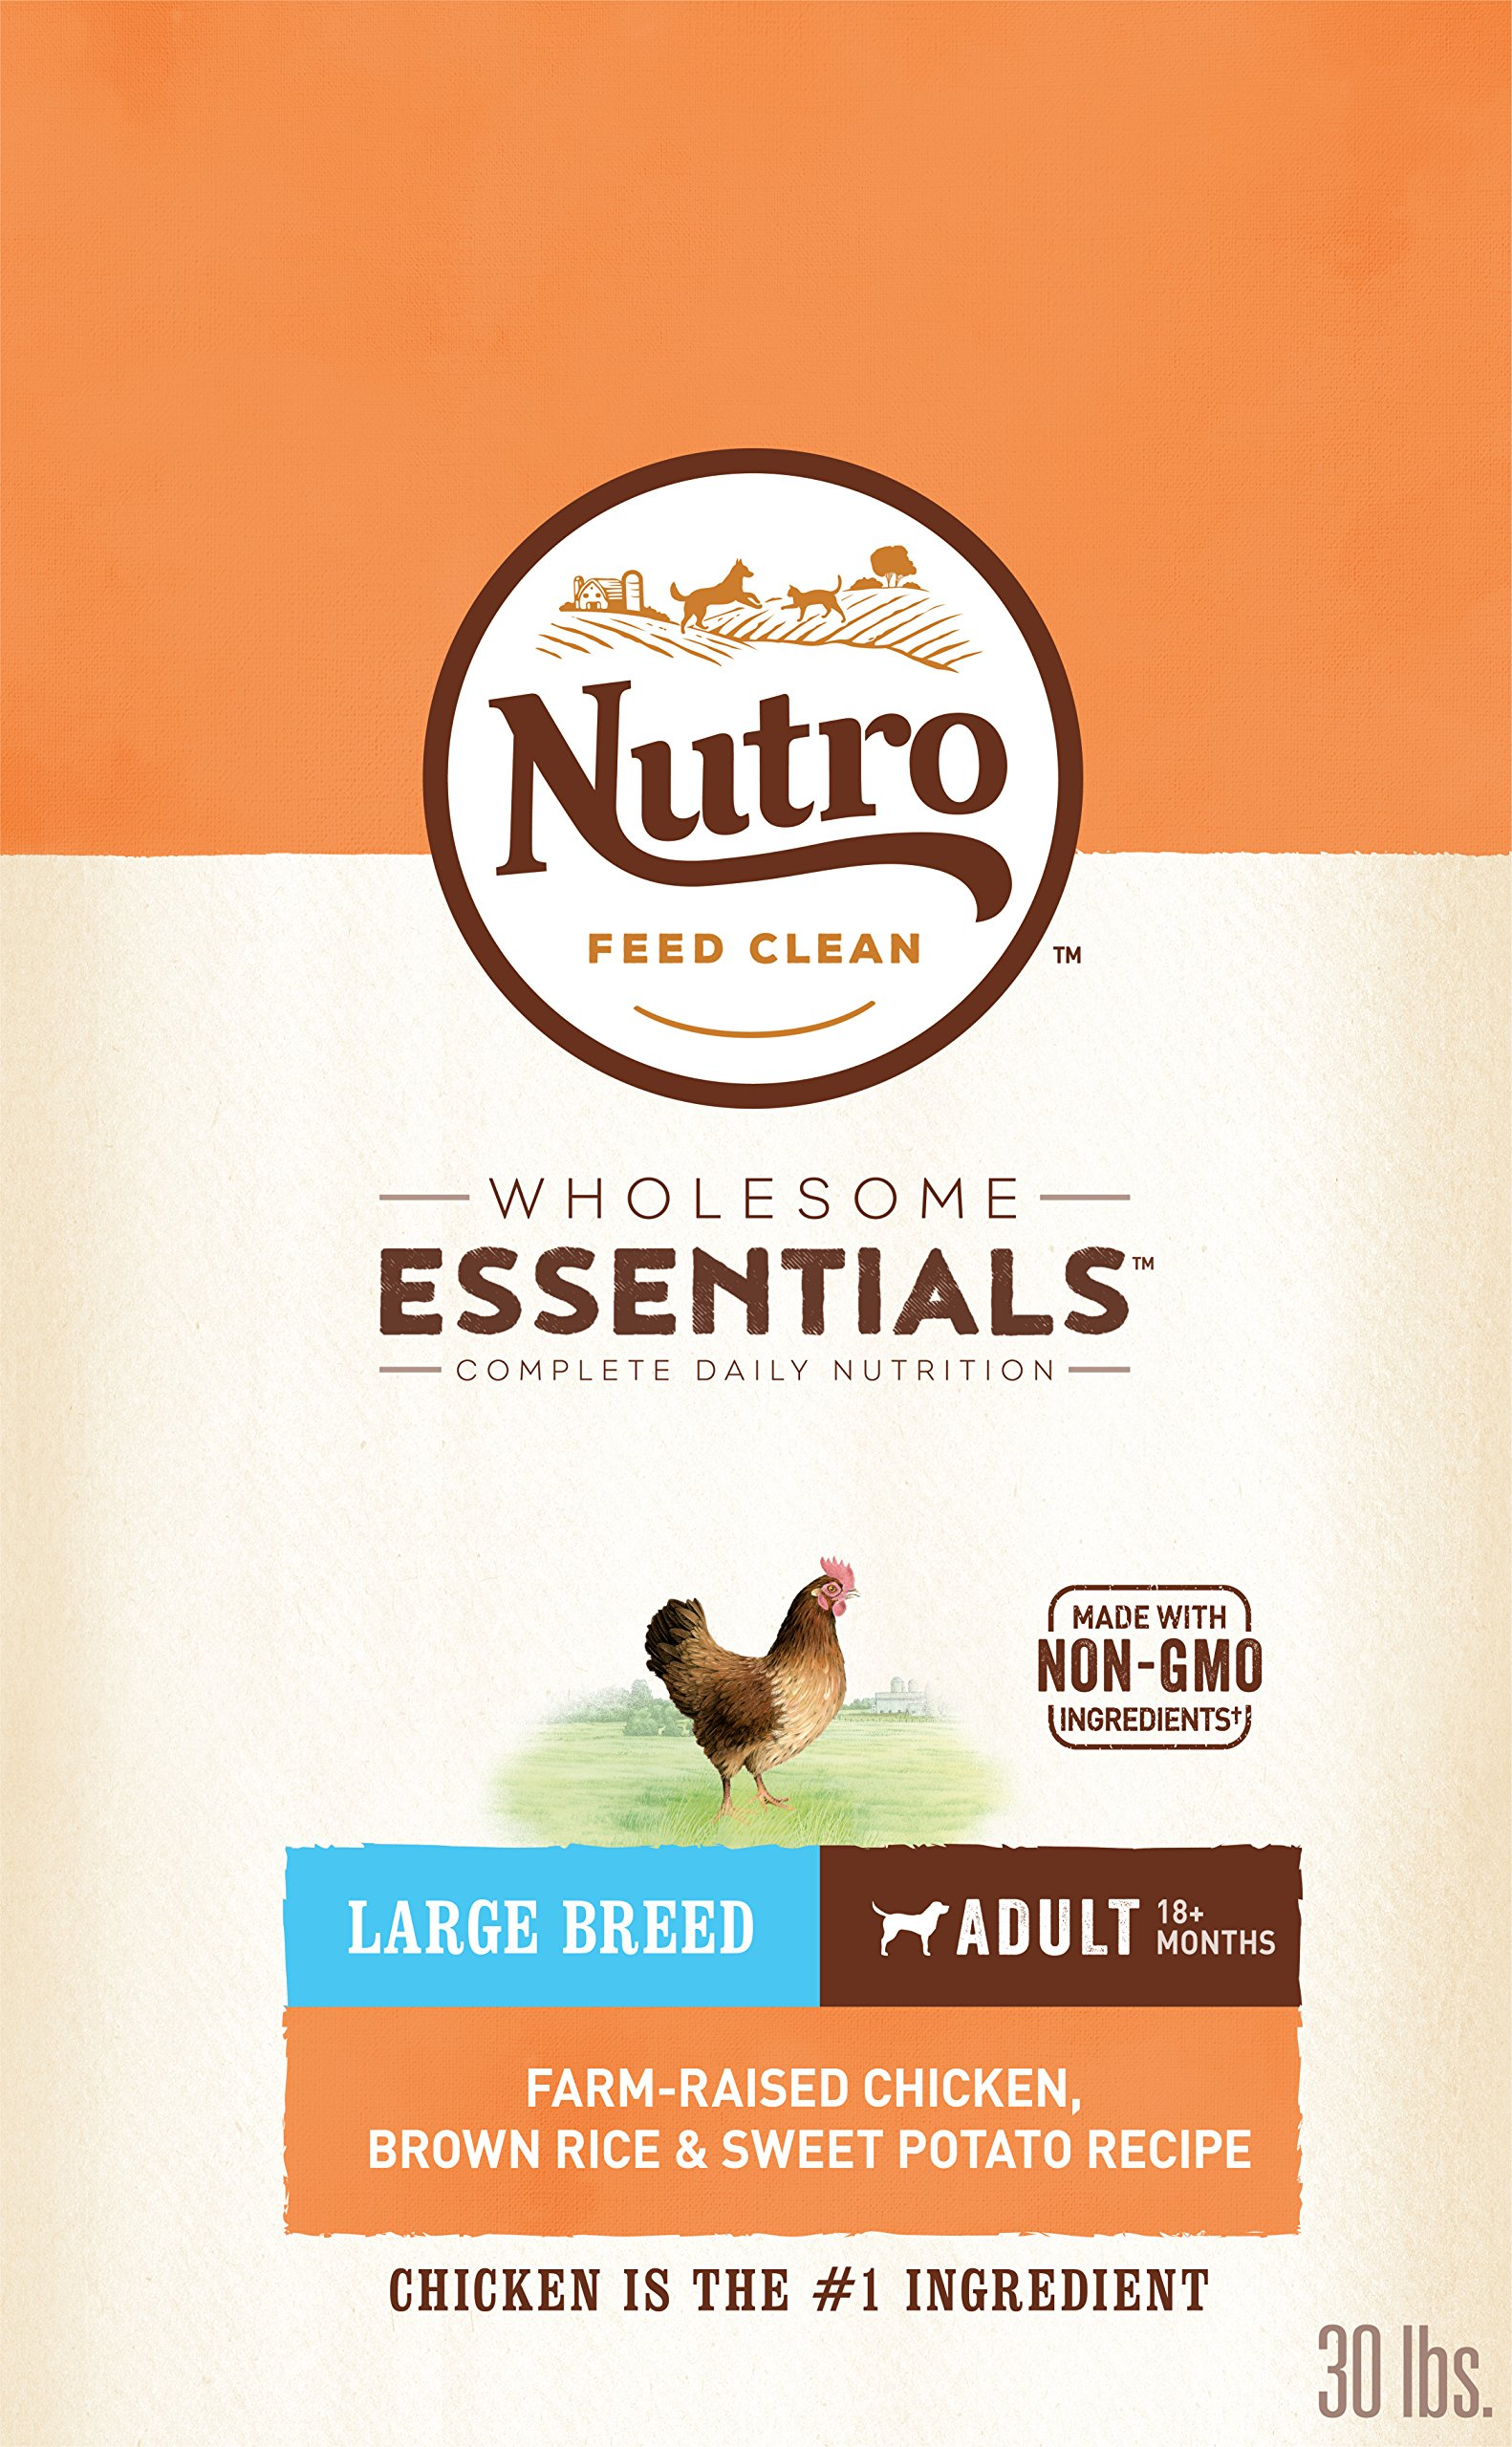 NUTRO WHOLESOME ESSENTIALS Natural Adult Large Breed Dry Dog Food Farm-Raised Chicken, Brown Rice & Sweet Potato Recipe, 30 lb. Bag by Nutro